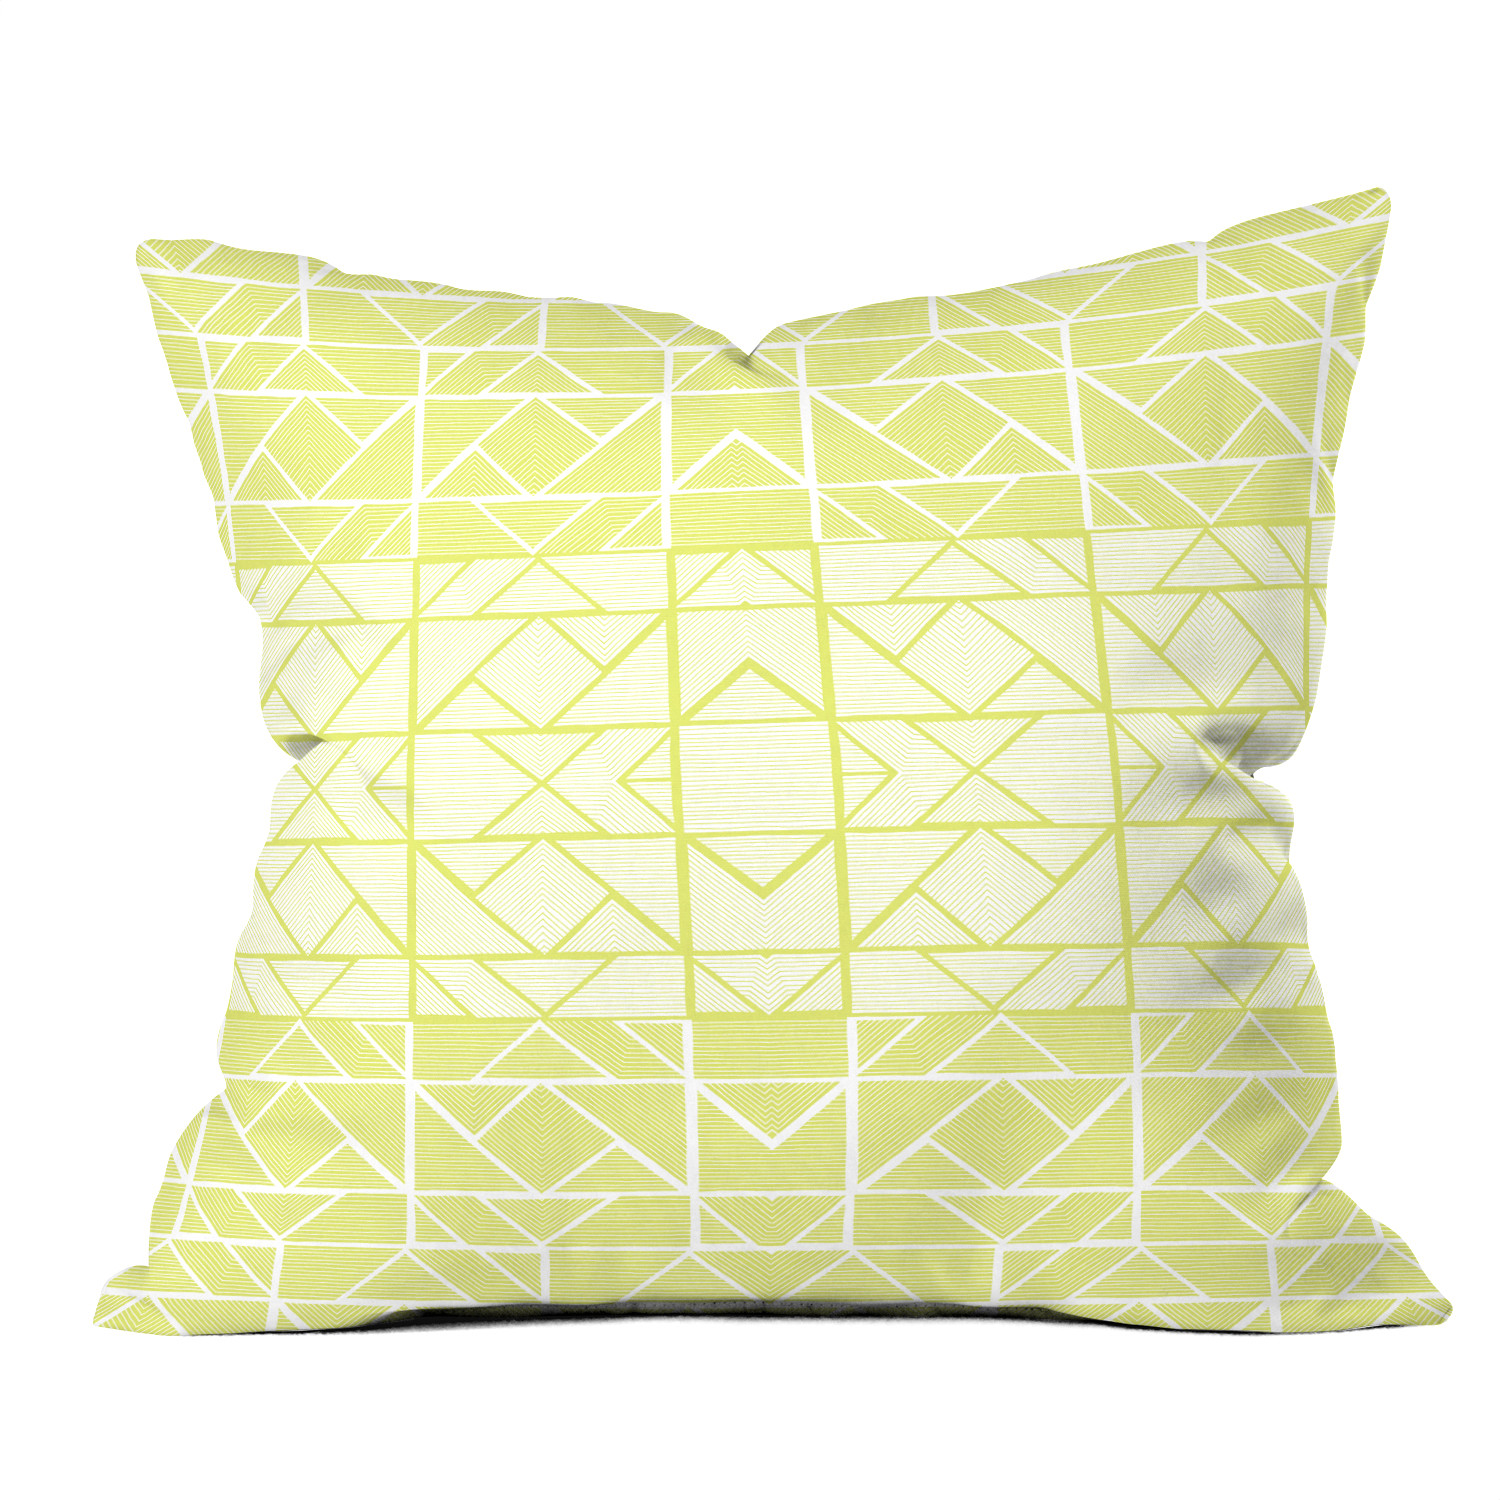 Shifting Pyramids Yellow // Throw Pillow (Small) - Gneural For DENY Designs - Touch of Modern